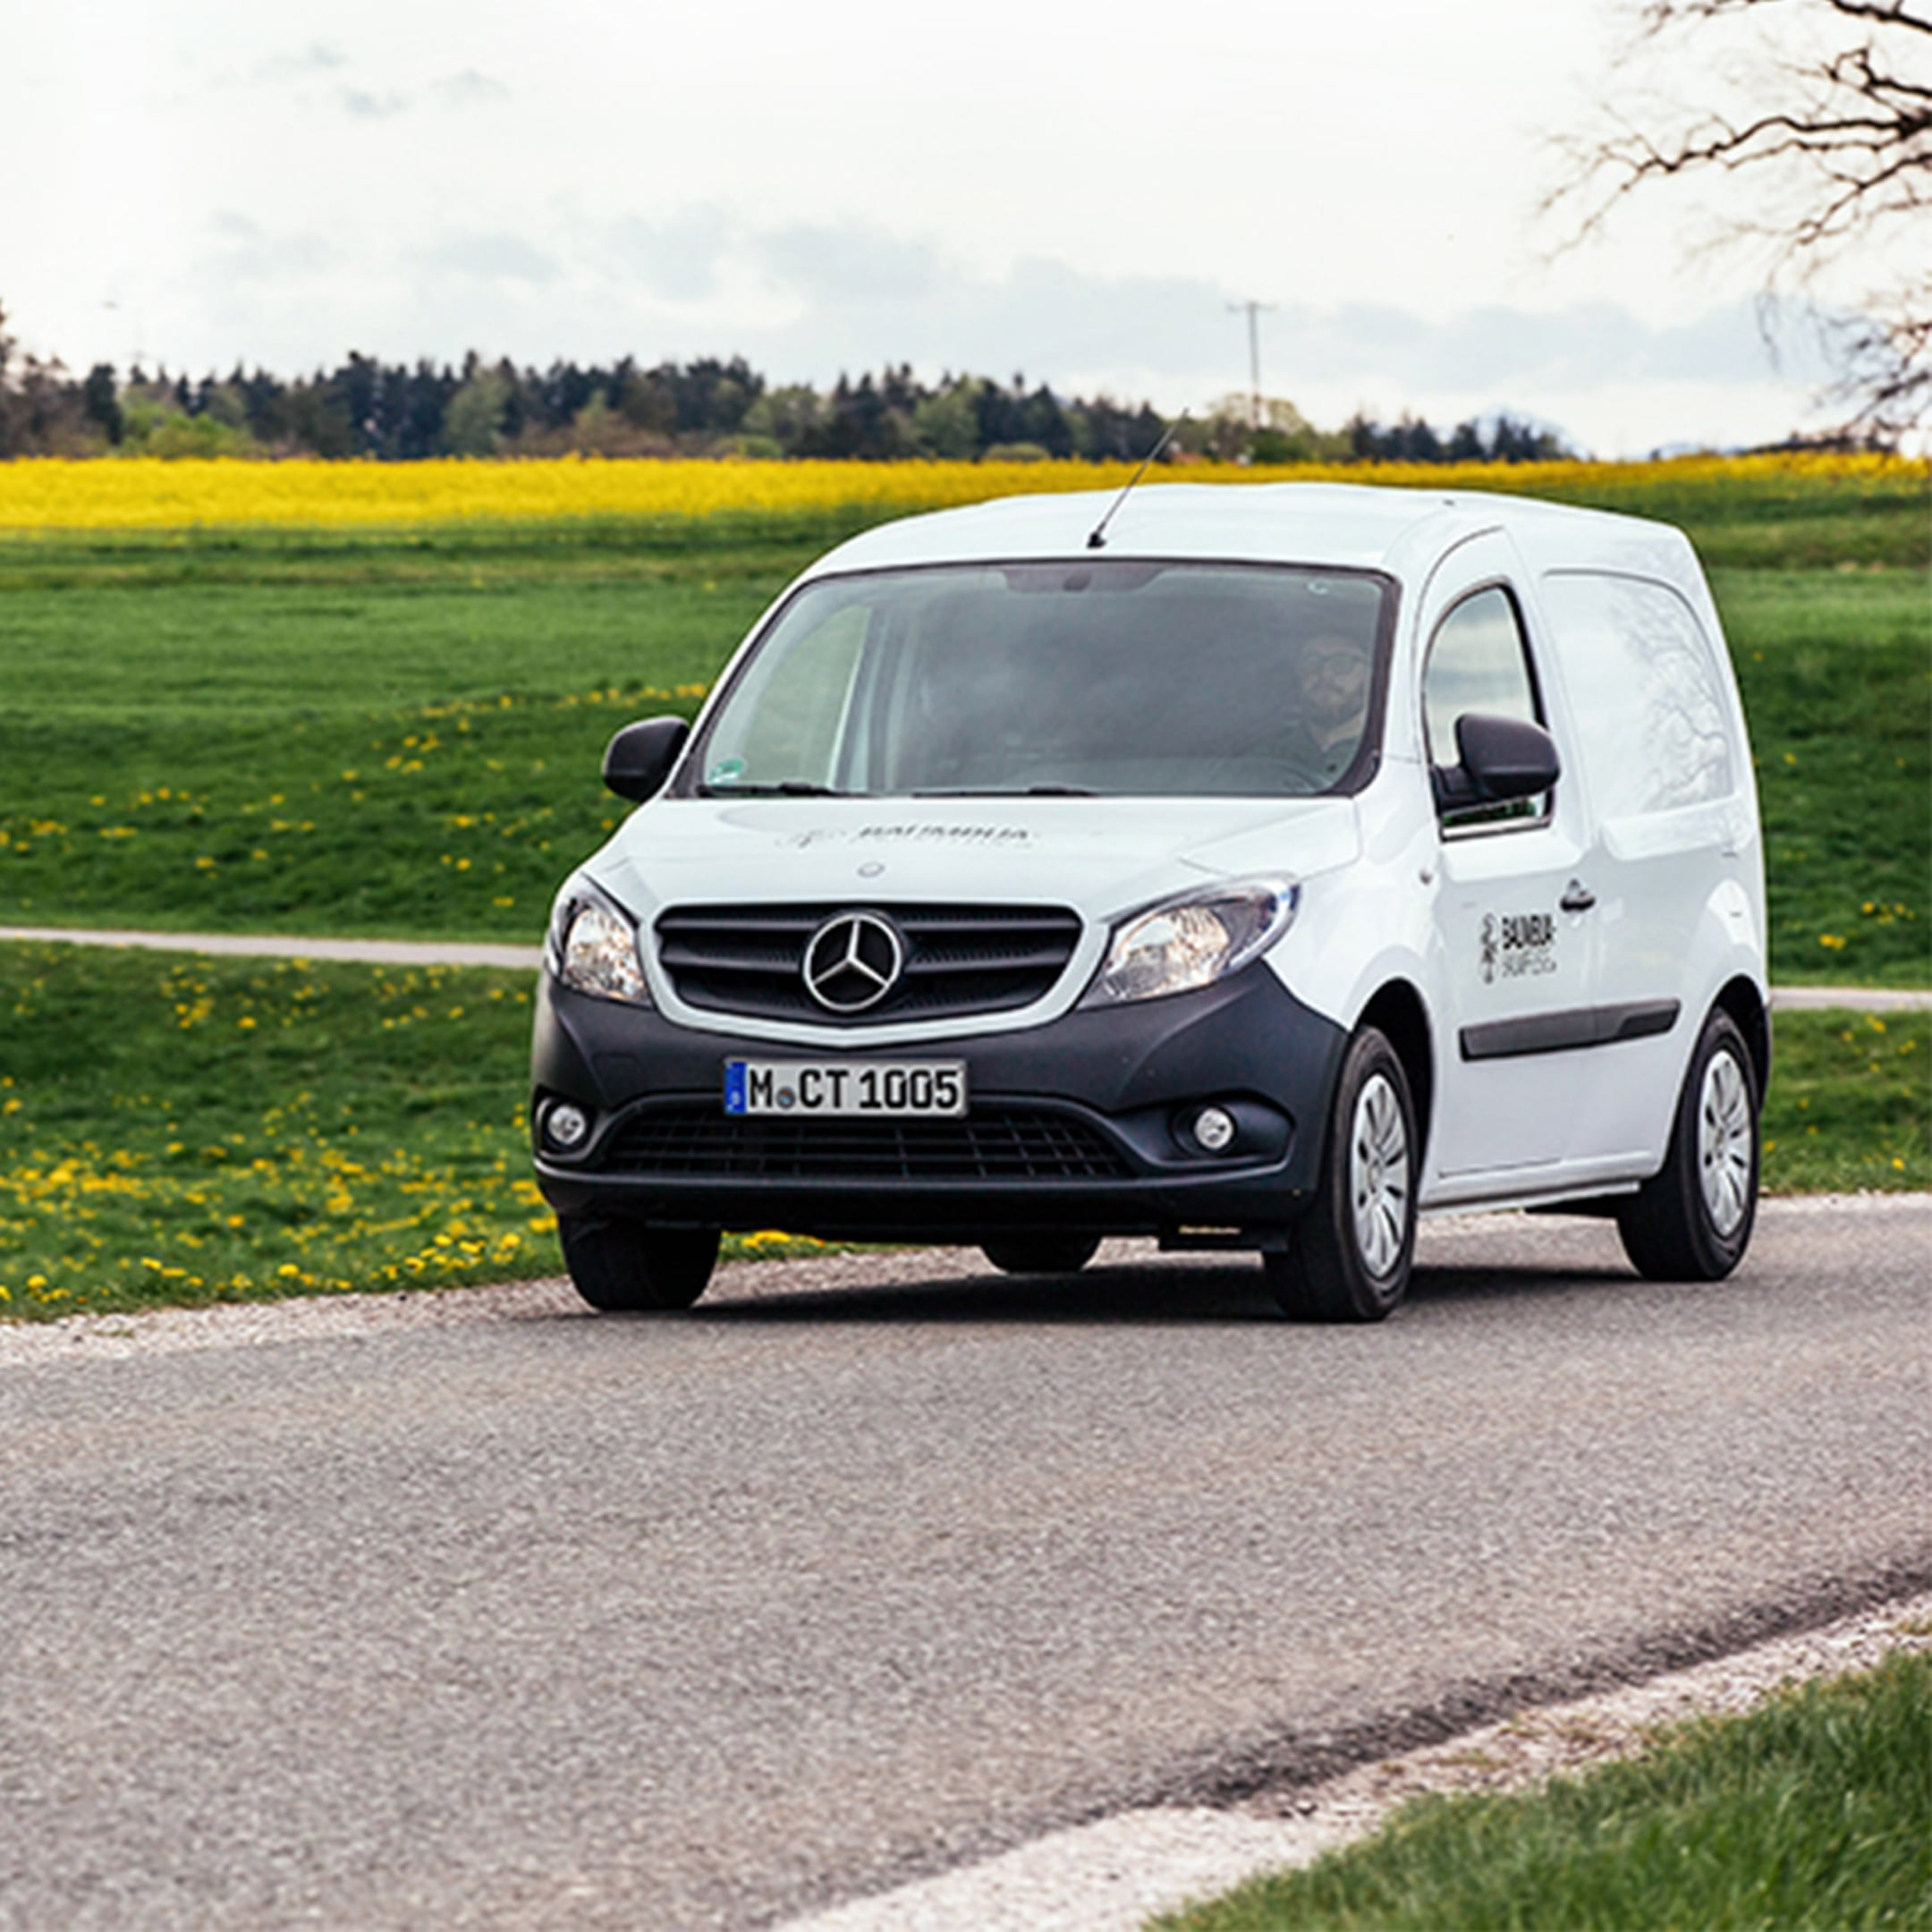 A white Citan driving along an out-of-town road